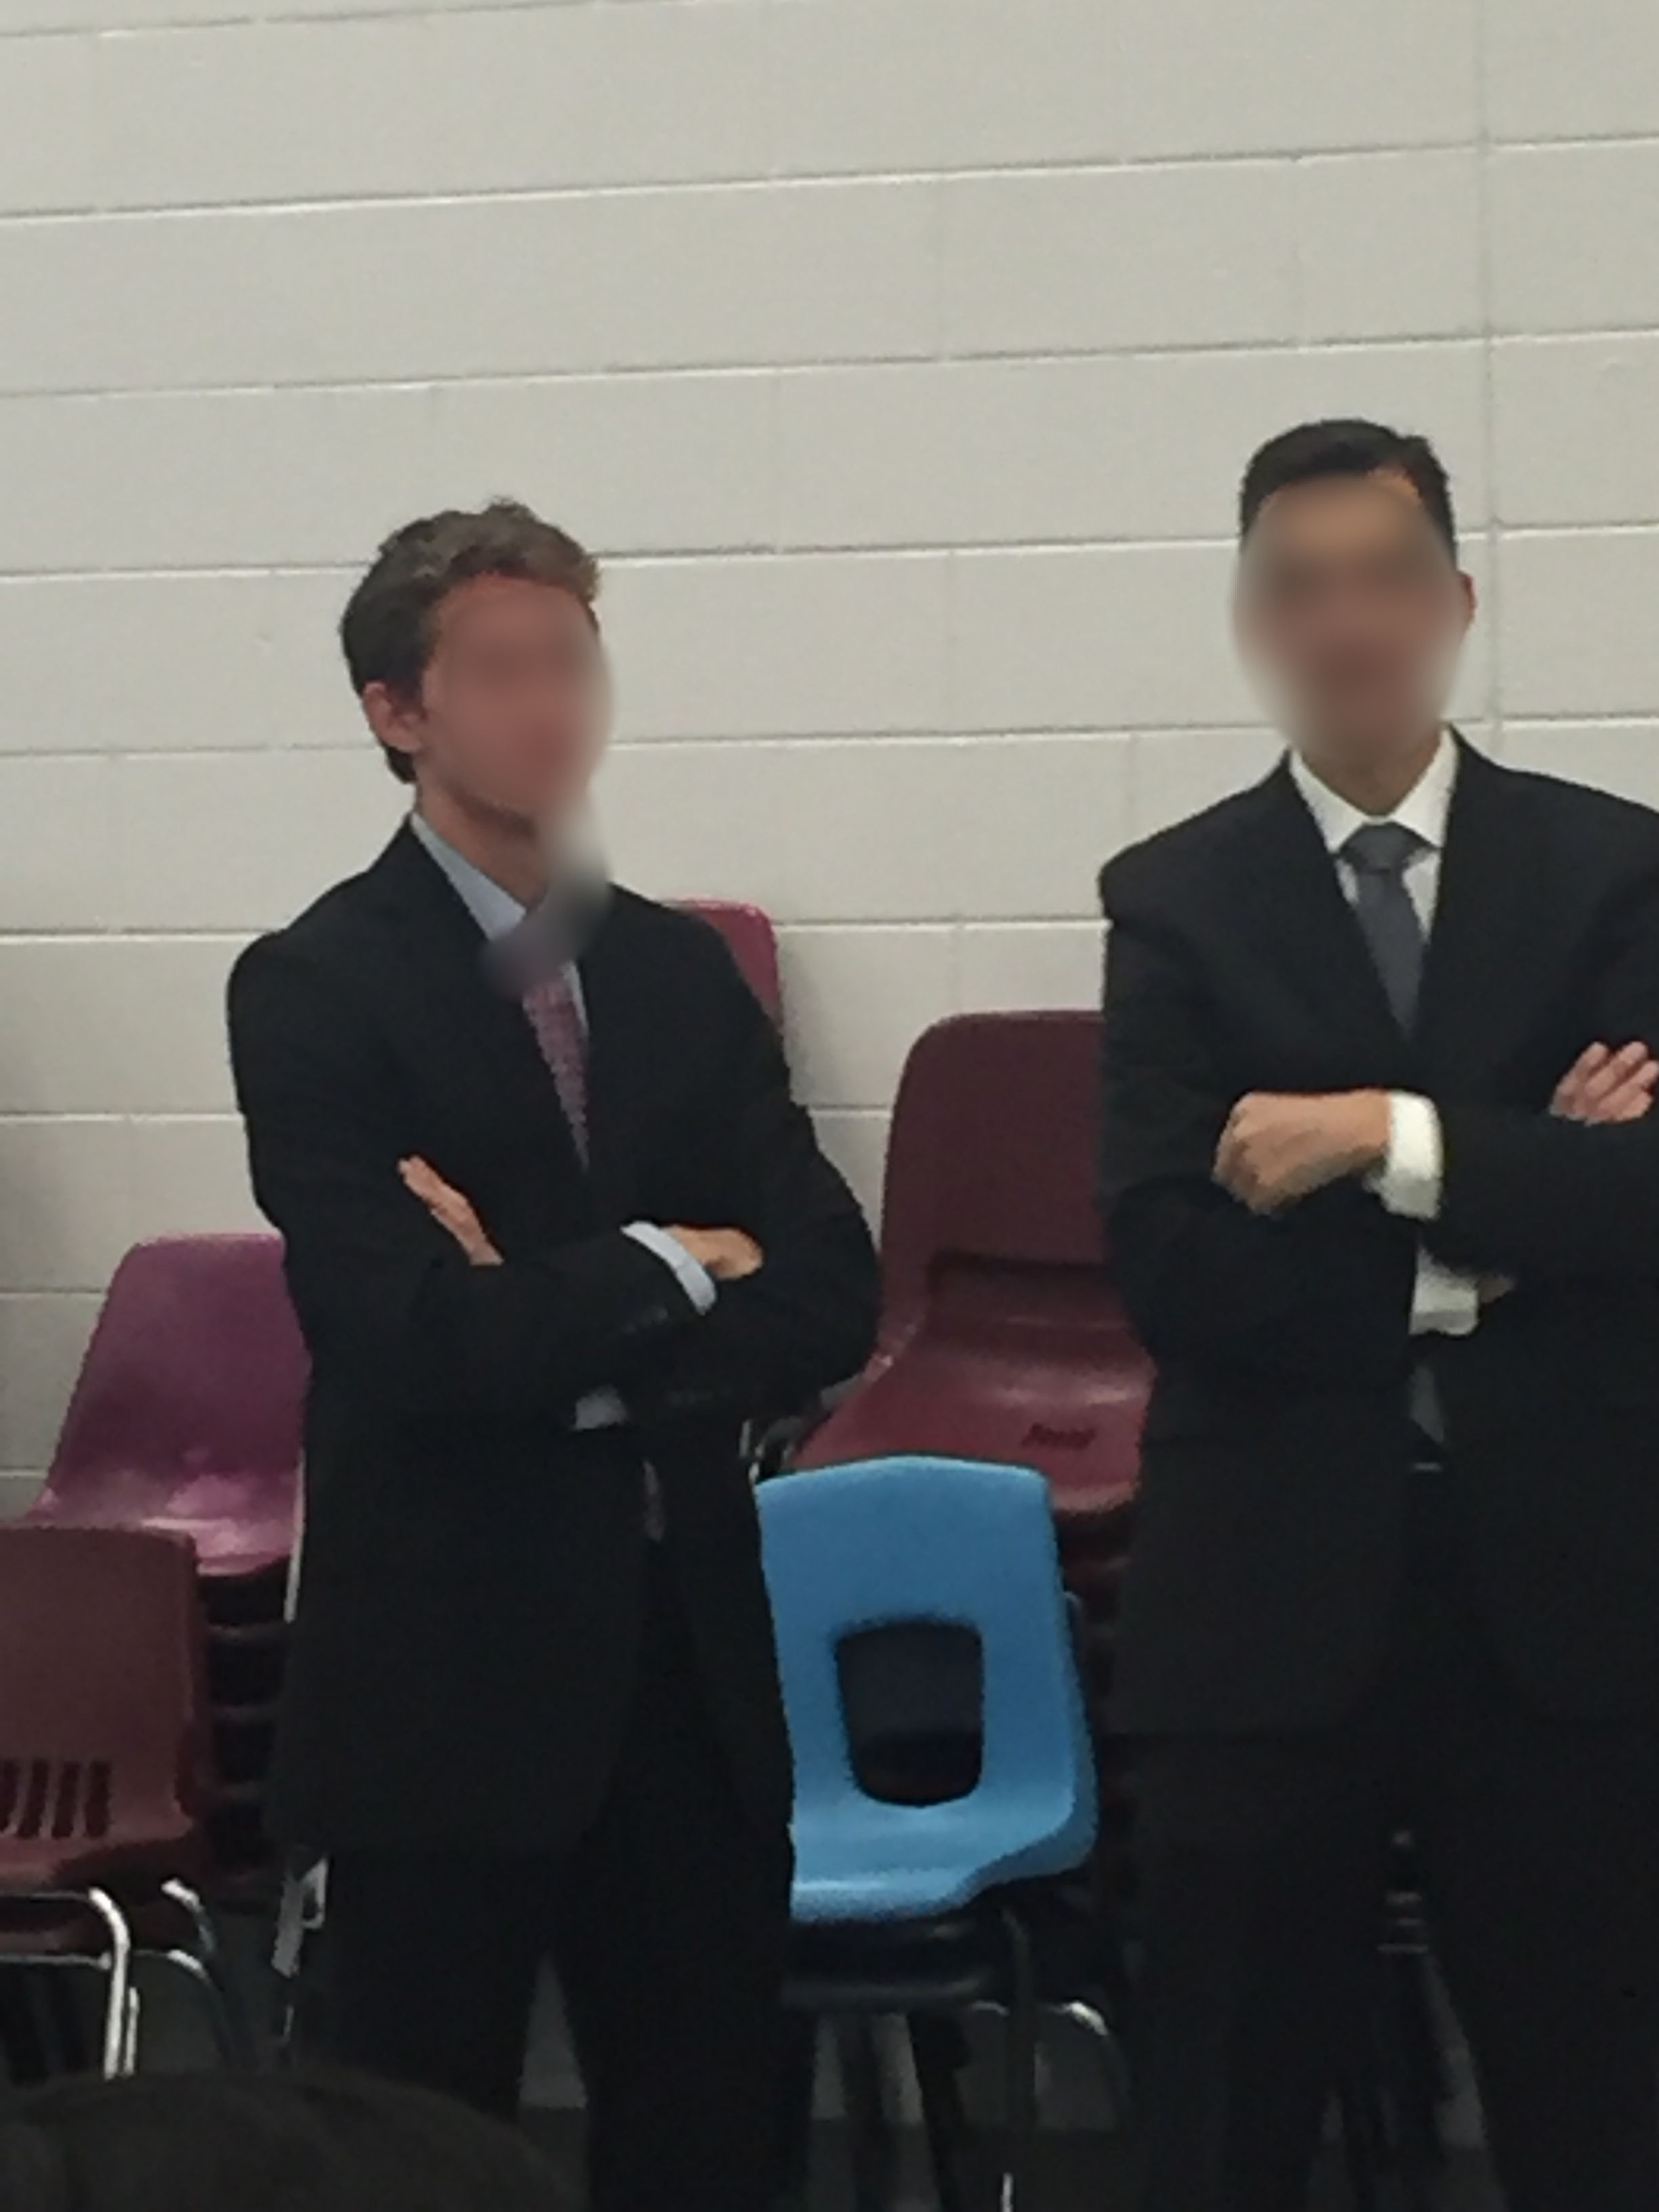 This guy at my school went as the principal for Halloween. The principal regularly walks around the lunchroom during lunch, so this guy did the same.